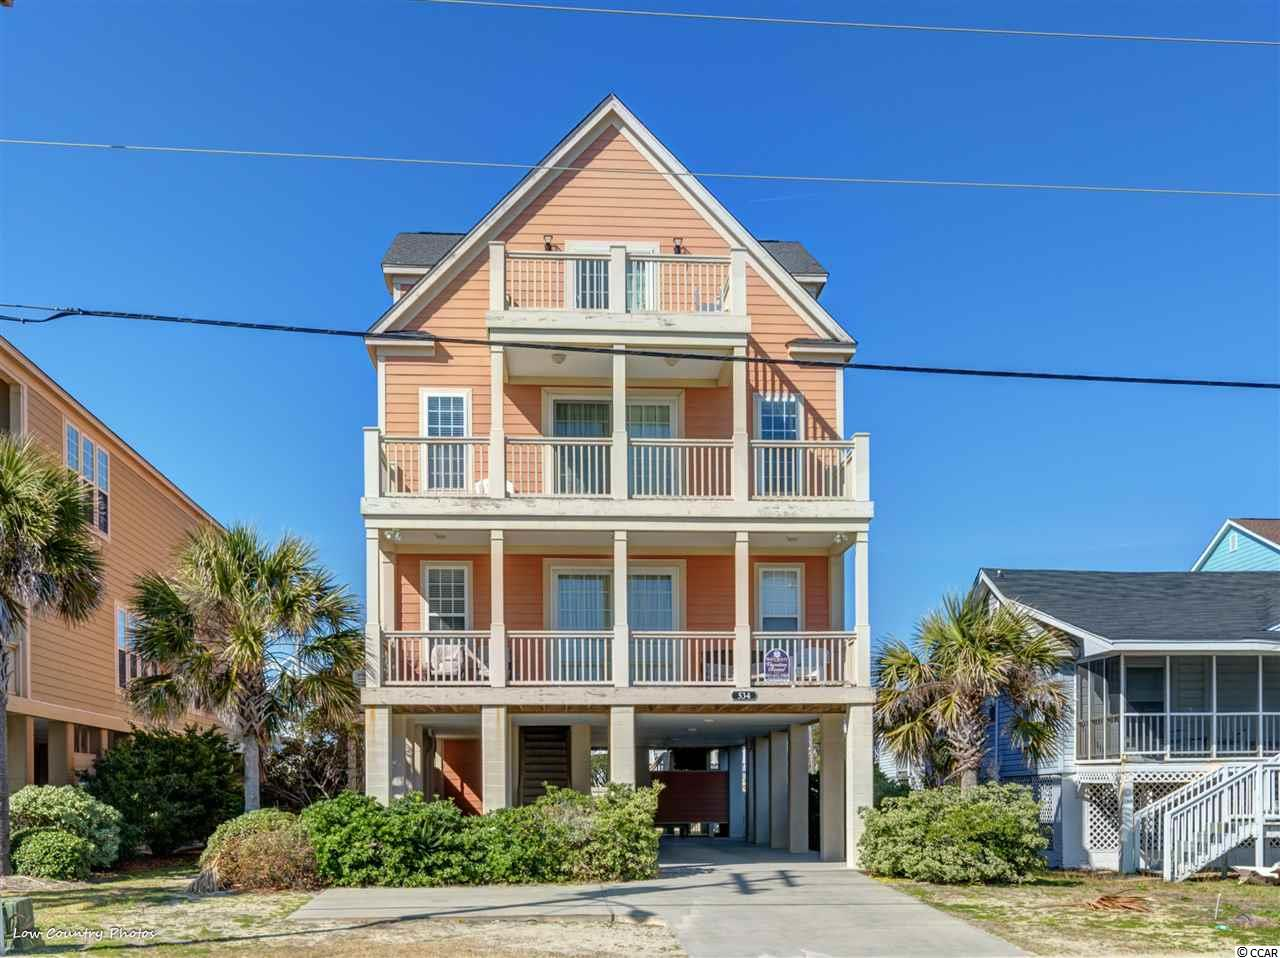 Wonderful 6br/6bth 2nd row beach house! Fully furnished and professionally decorated....Great ocean view porches! Kitchen has granite and stainless appliances. Additional family room on 2nd floor w wet bar. Great investment opportunity or second home!!!!  Great rental income!